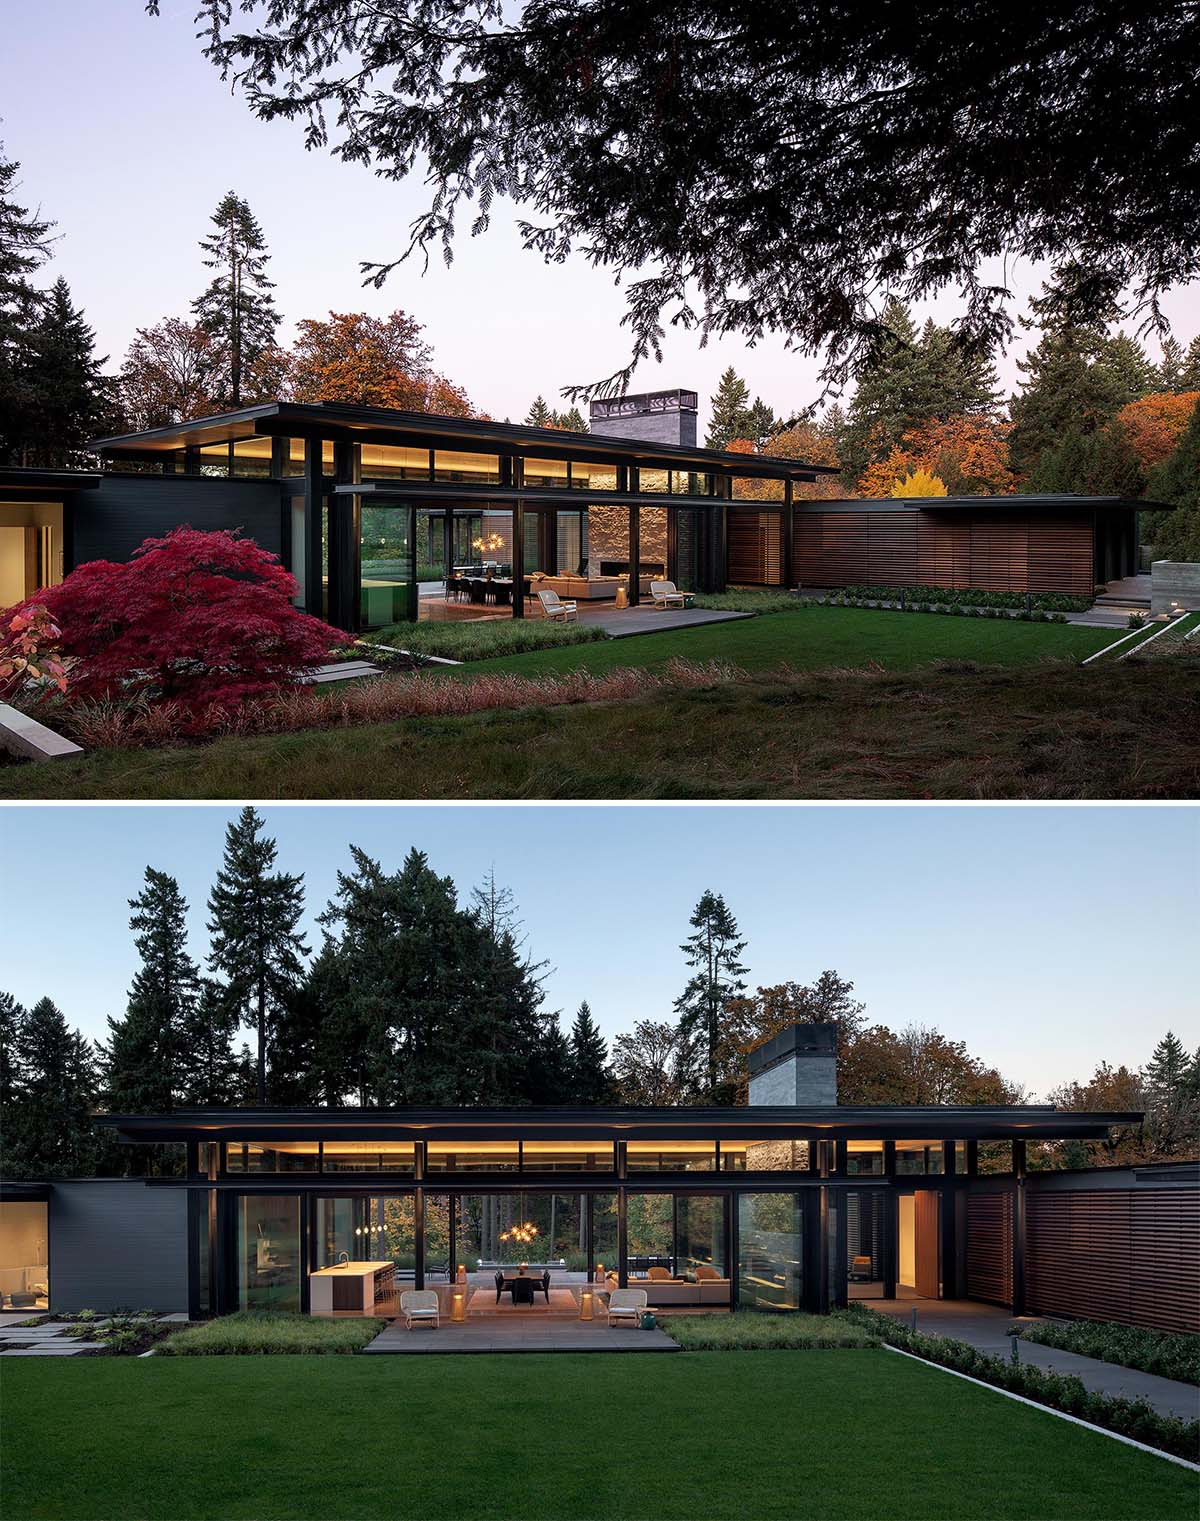 The home, which is nestled into the hillside, has a simple palette of wood, steel, stone, and glass.